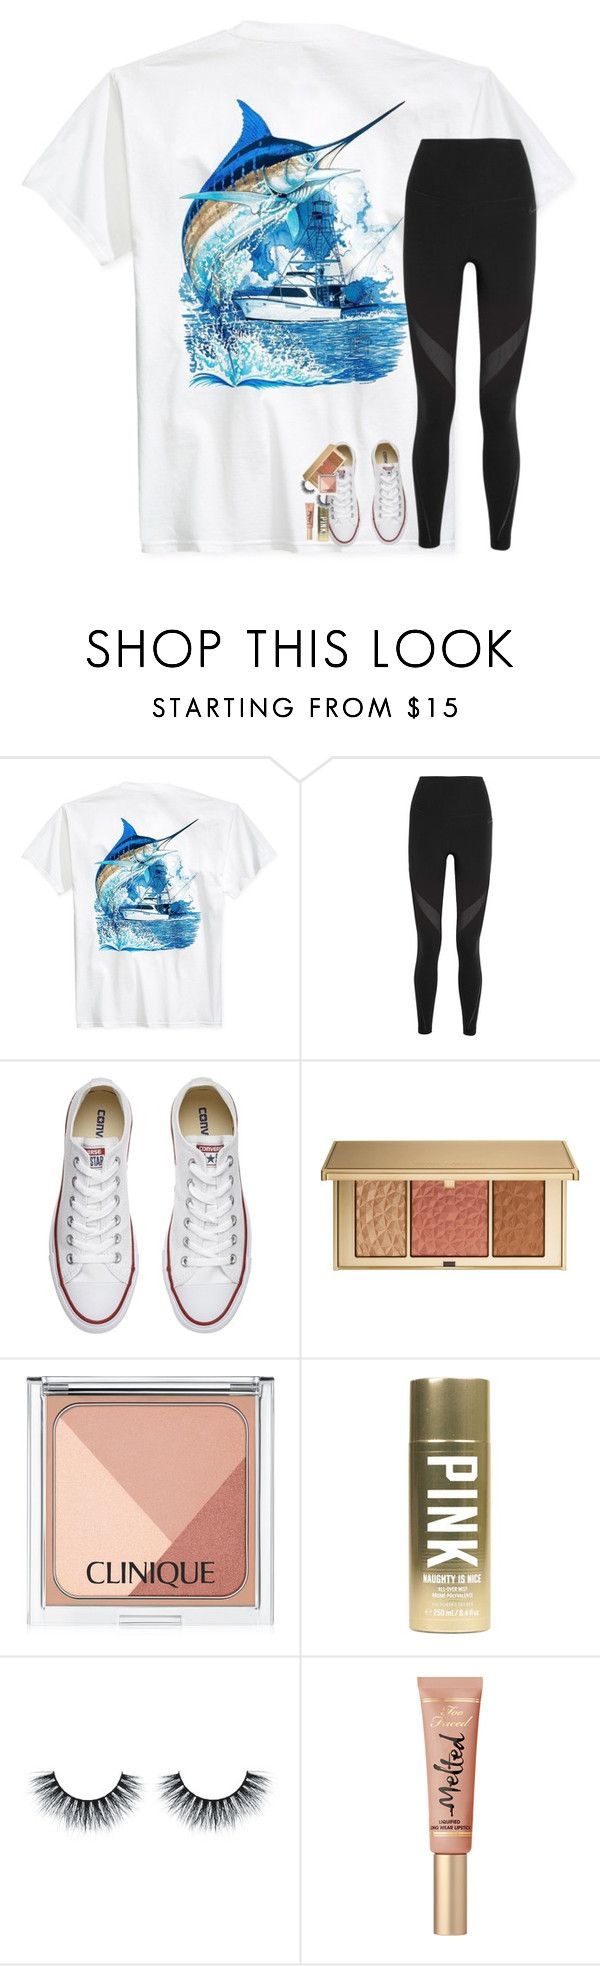 """comment your vsco! and follow me: lsg02"" by lindsaygreys ❤ liked on Polyvore featuring Guy Harvey, NIKE, Converse, Estée Lauder, Clinique and Victoria's Secret"